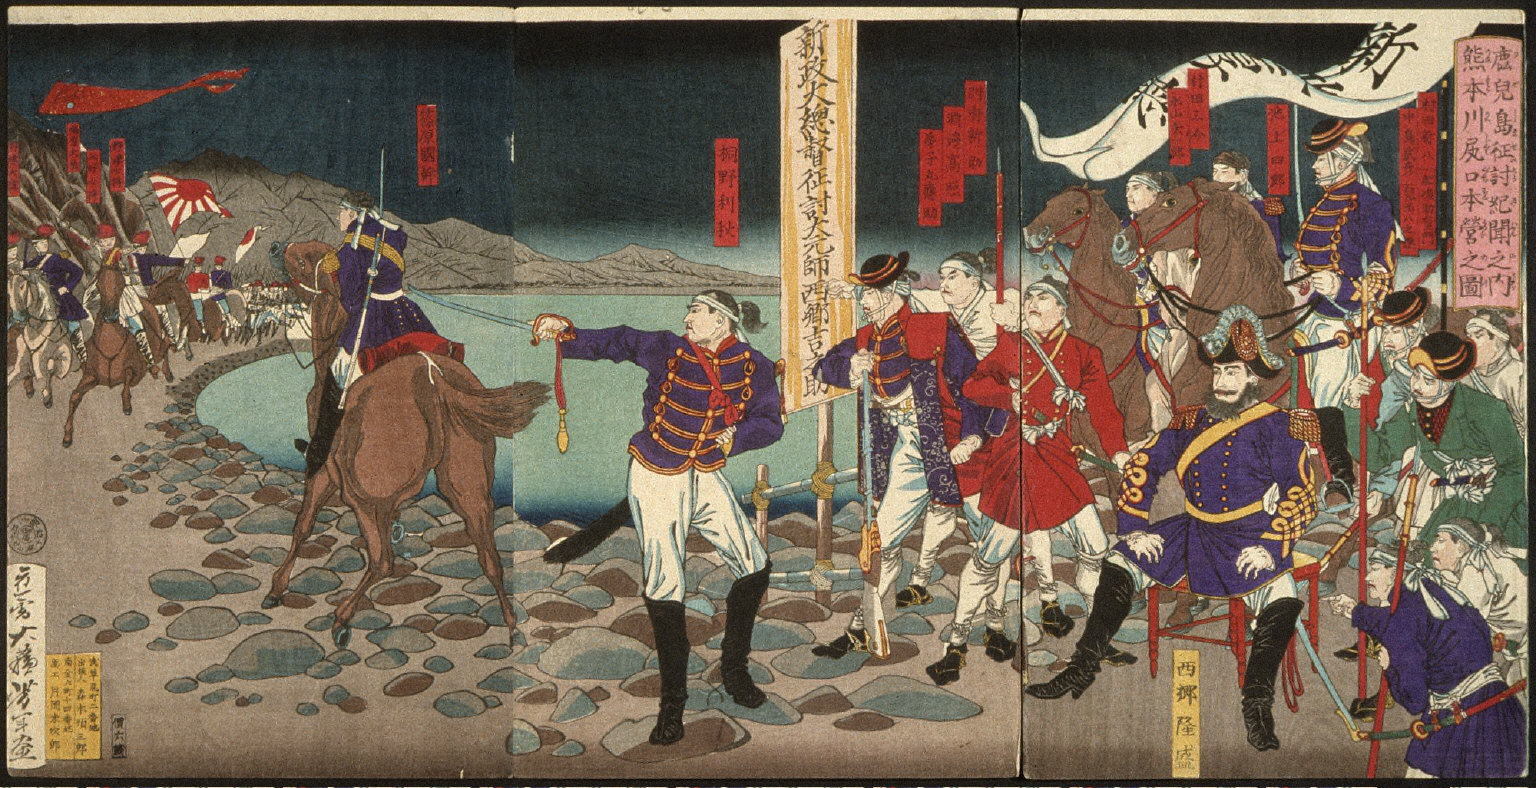 An Oral Account of the Subjugation of Kagoshima